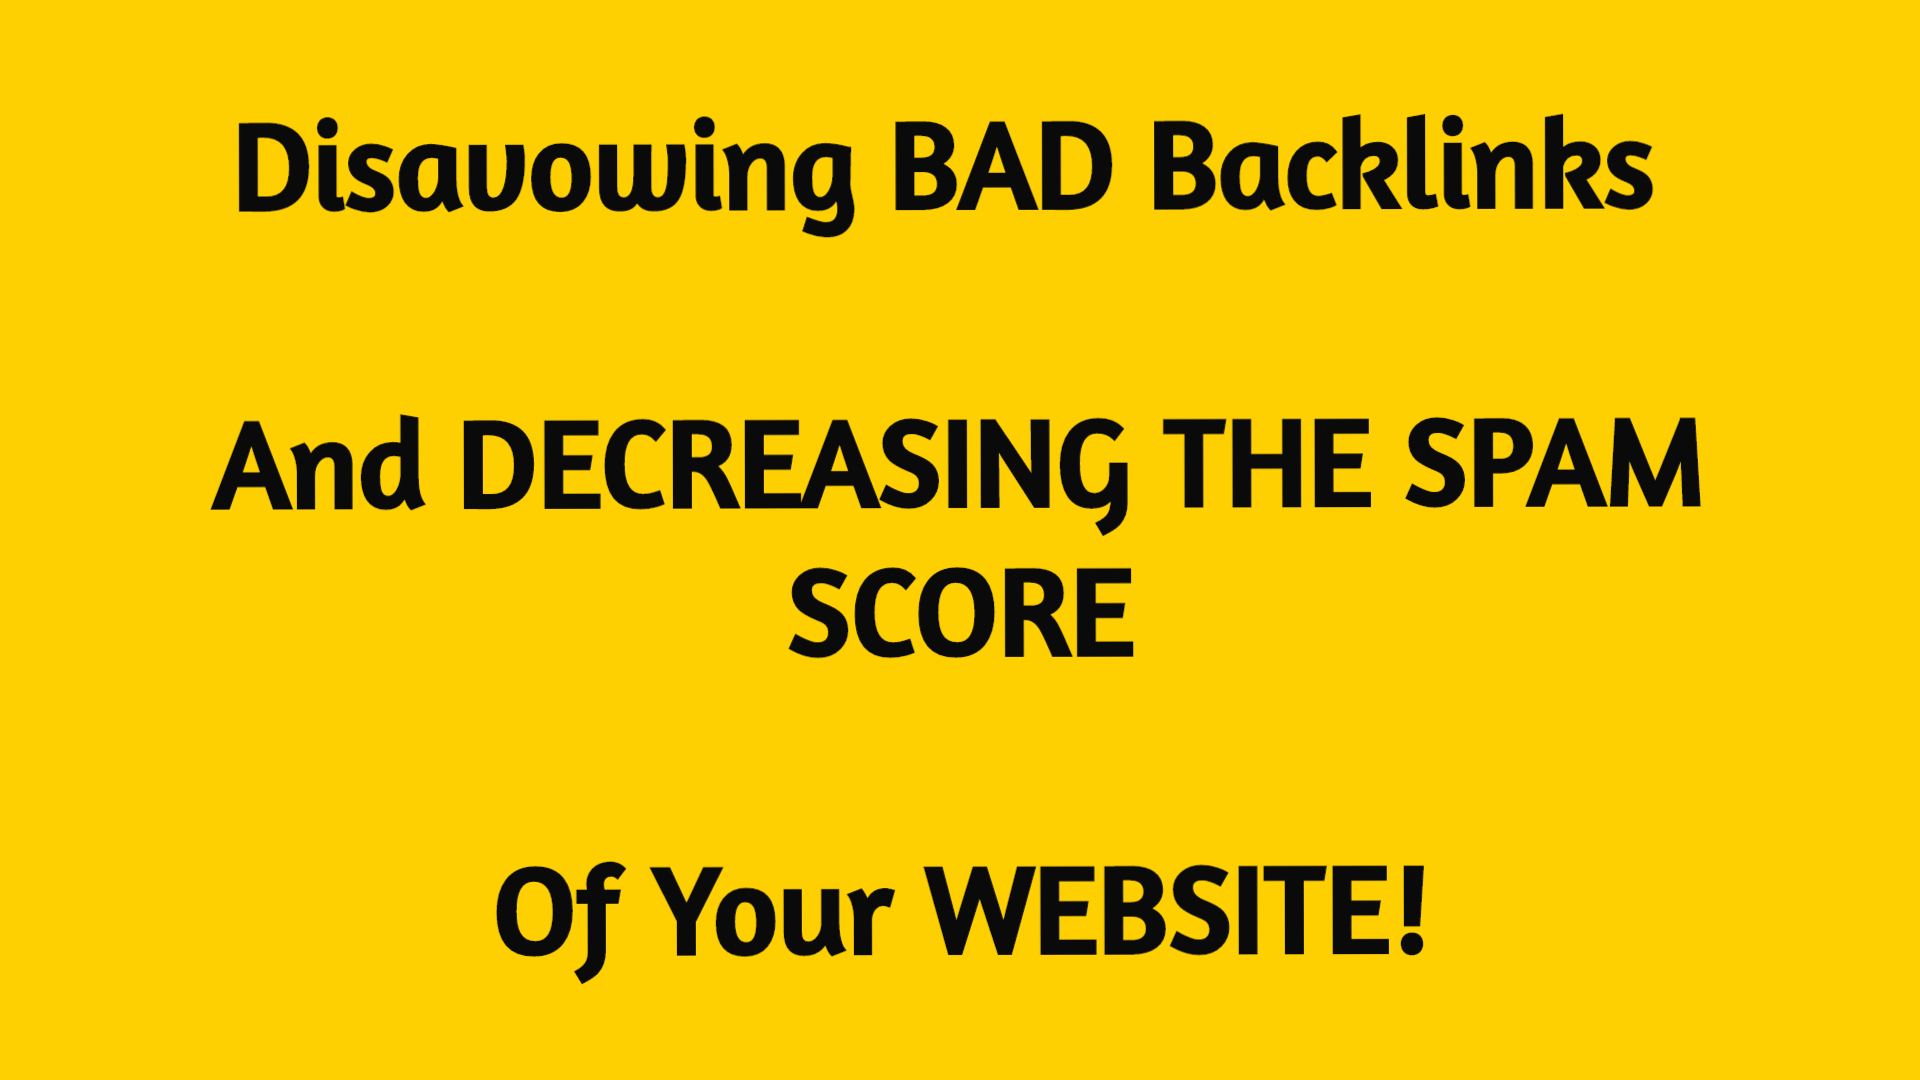 Removing BAD Backlinks & Decreasing SPAM Score Of Your Website